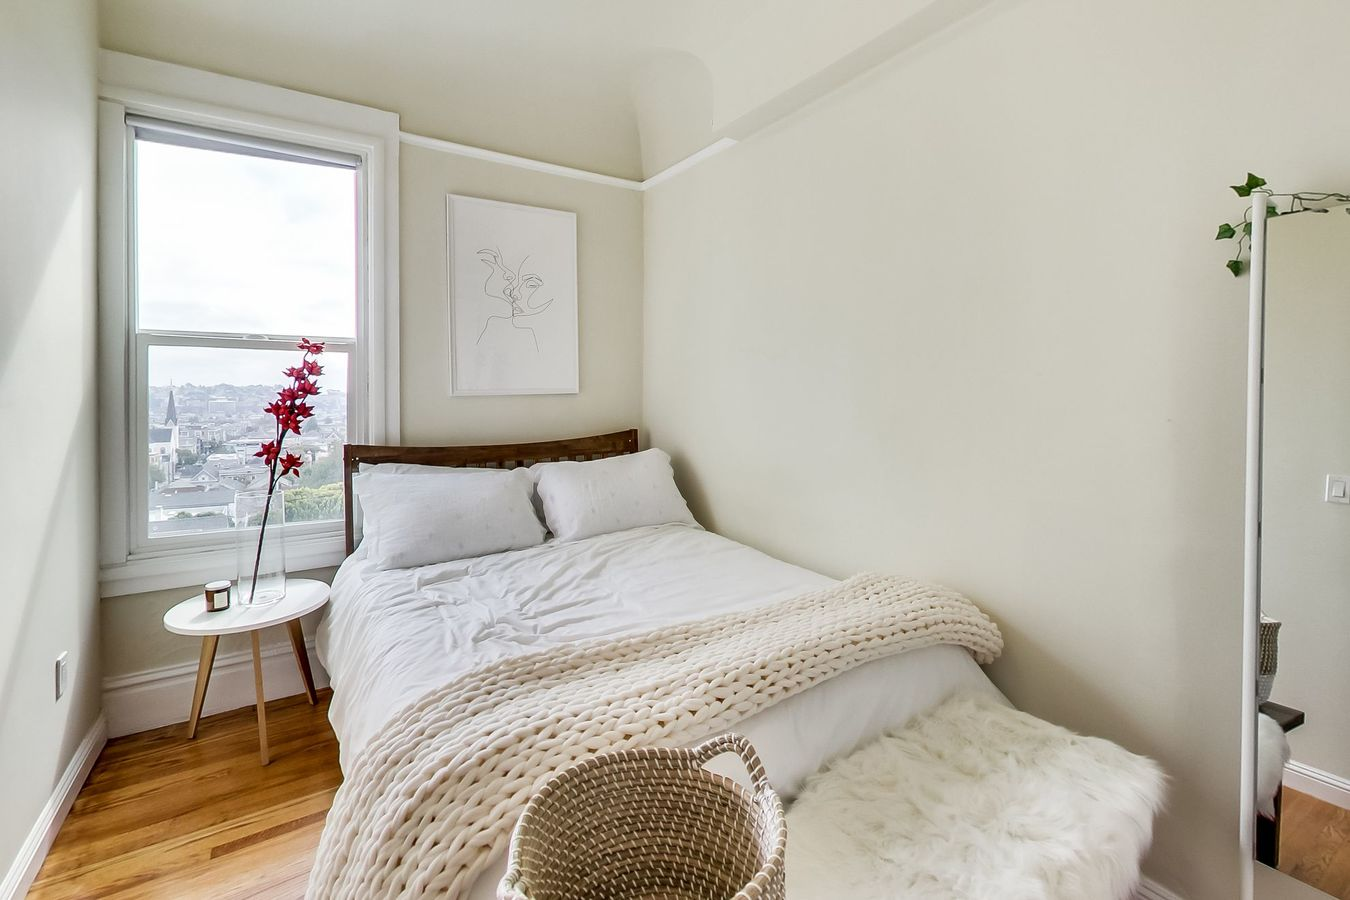 1 Bedroom 1 Bathroom House for rent at Church St & 23Rd St Coliving in San Francisco, CA